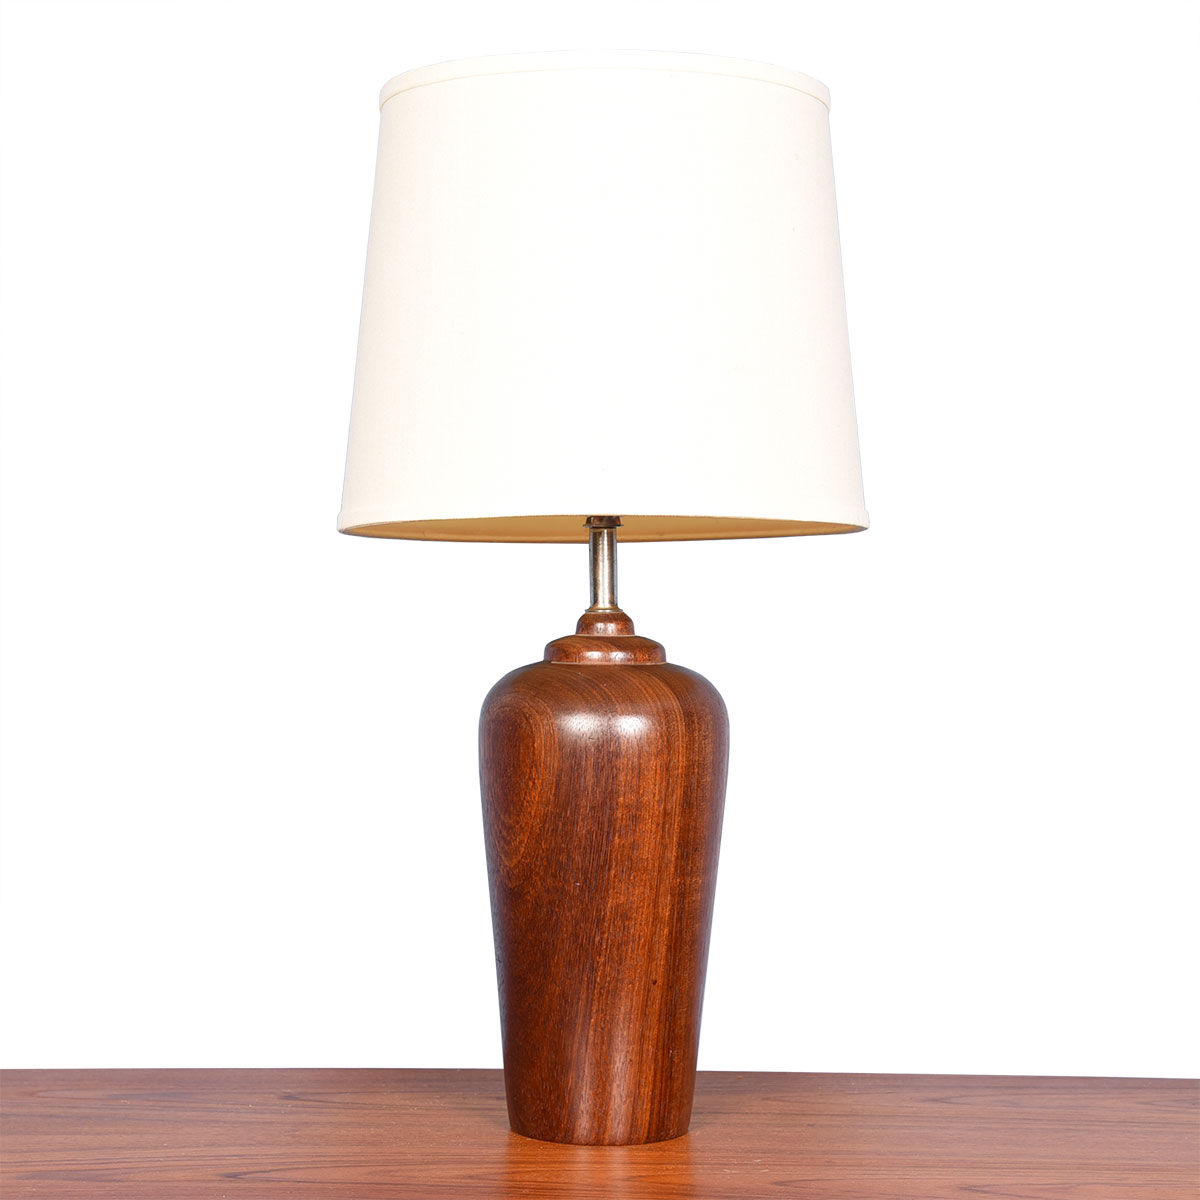 Turned Teak Lamp